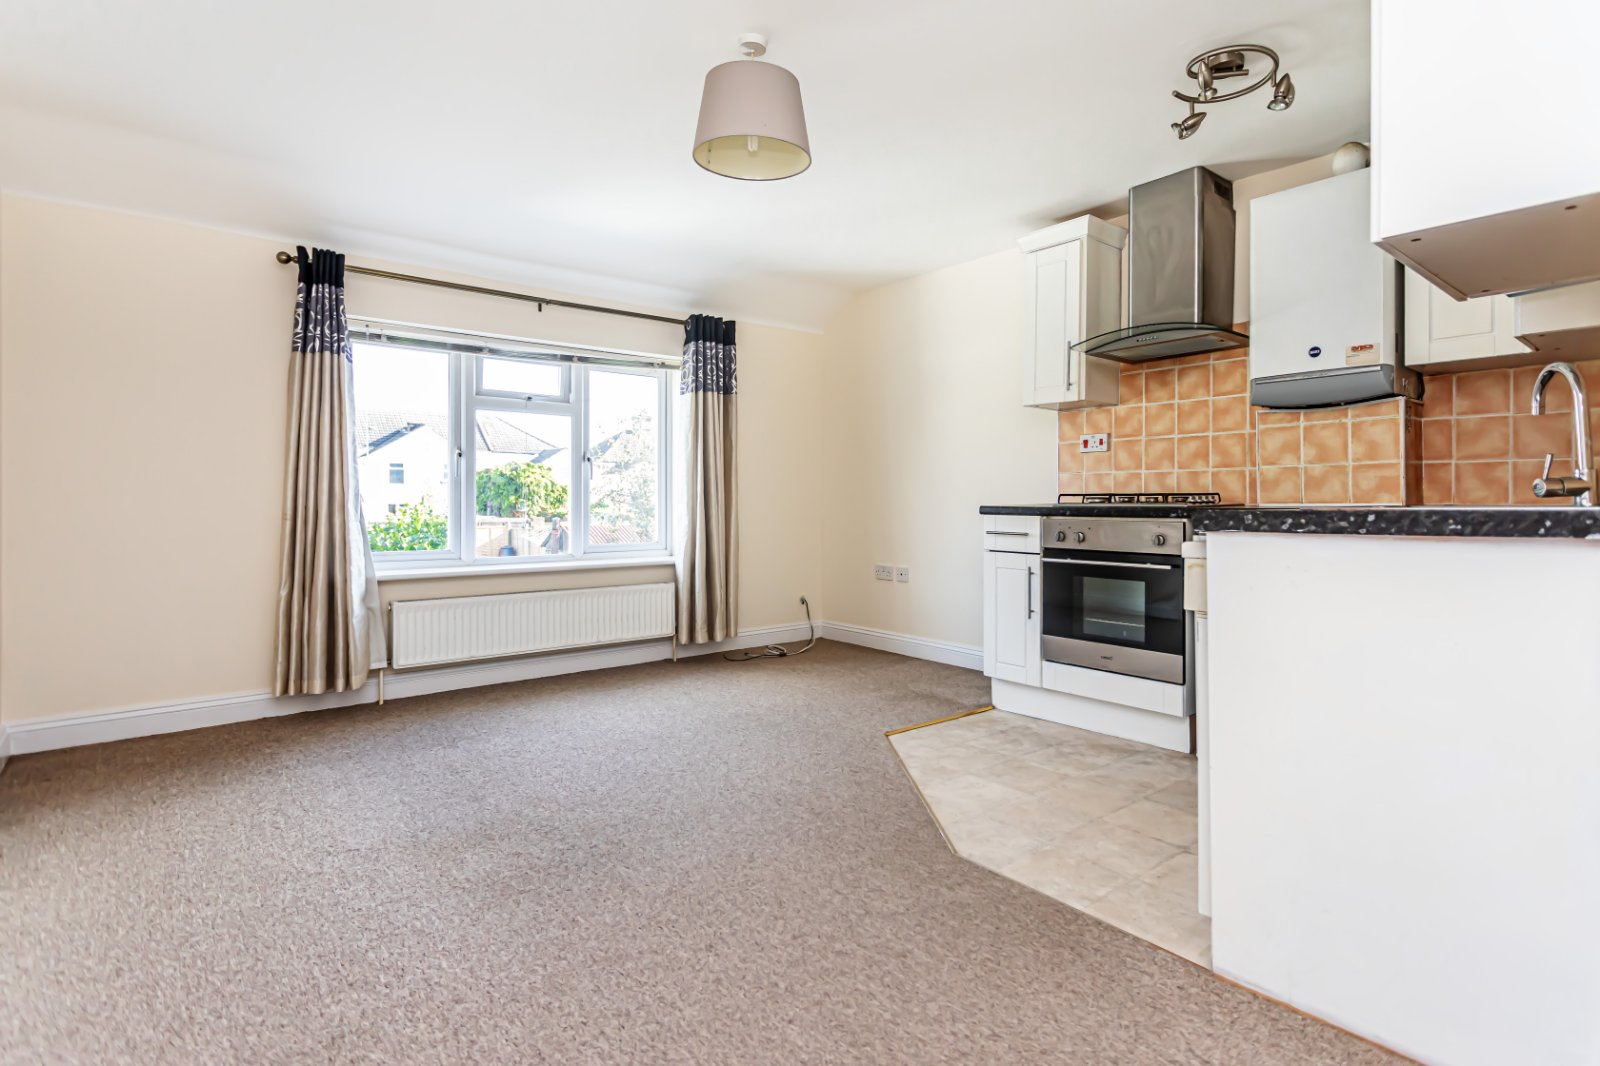 1 bed apartment to rent in Cleveland Road, Bournemouth - Property Image 1